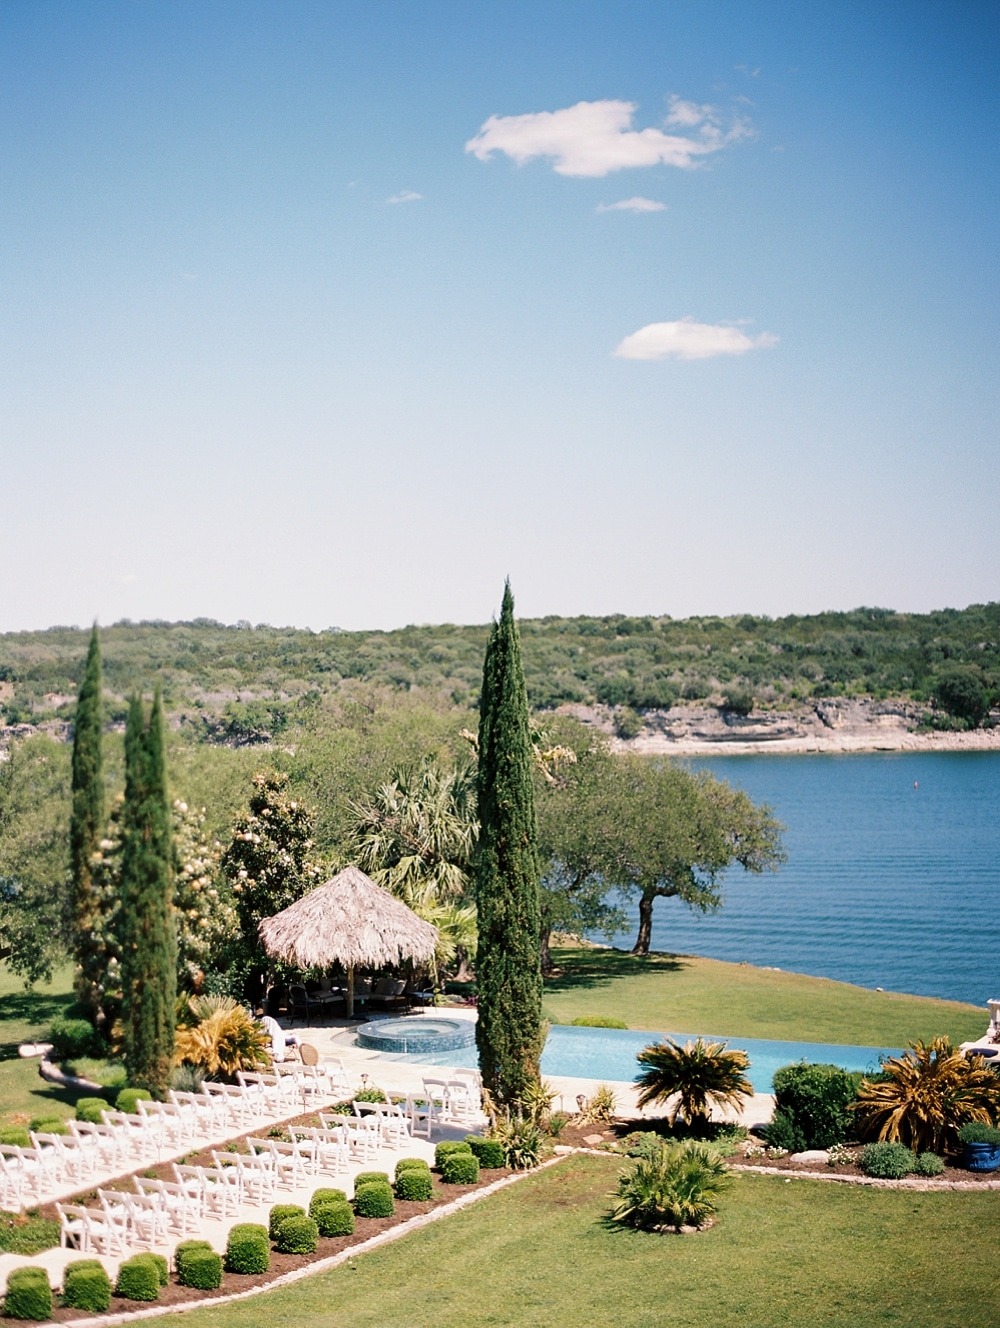 Kristin-La-Voie-Photography-Austin-Wedding-Photographer-lake-travis-27